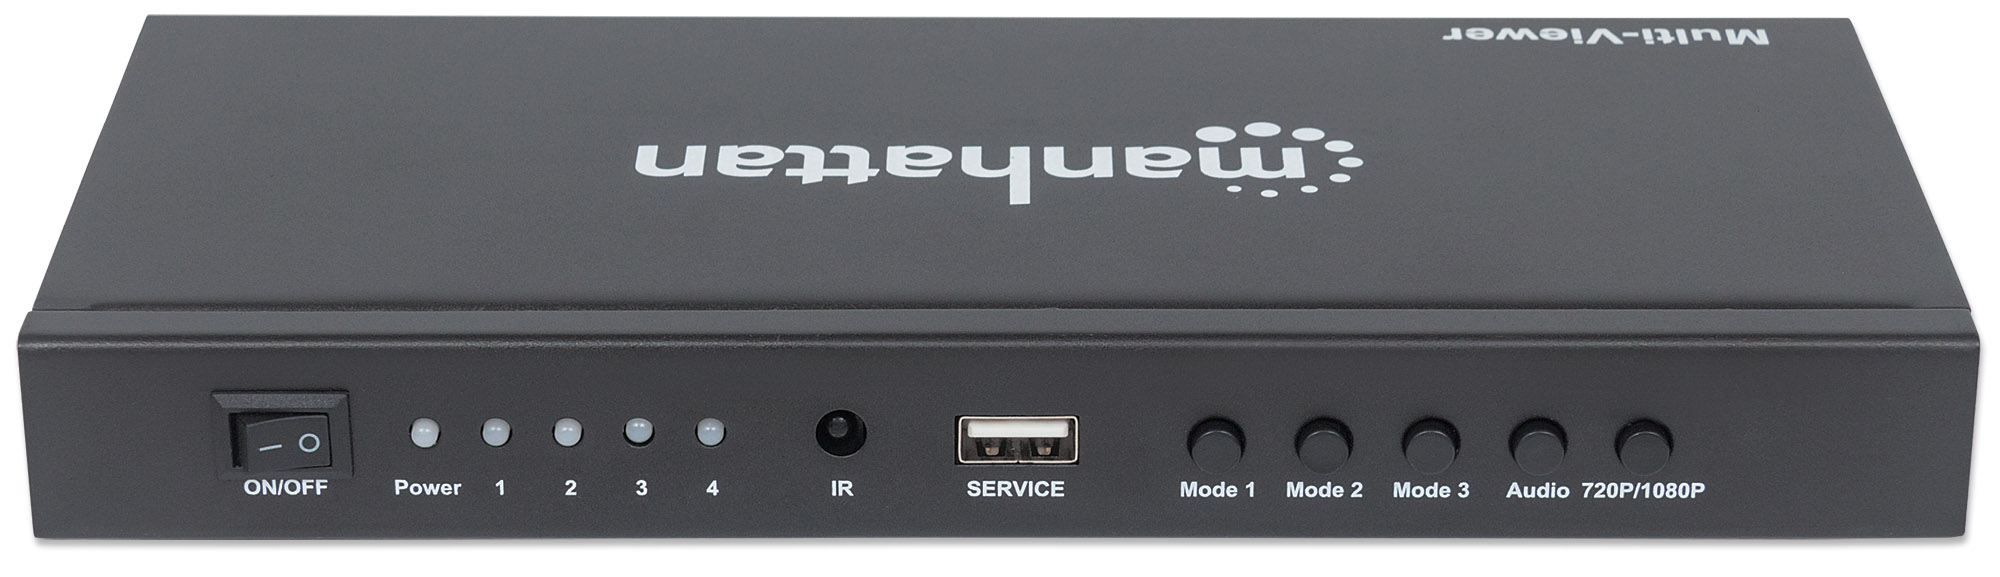 1080p 4-Port HDMI Multiviewer Switch